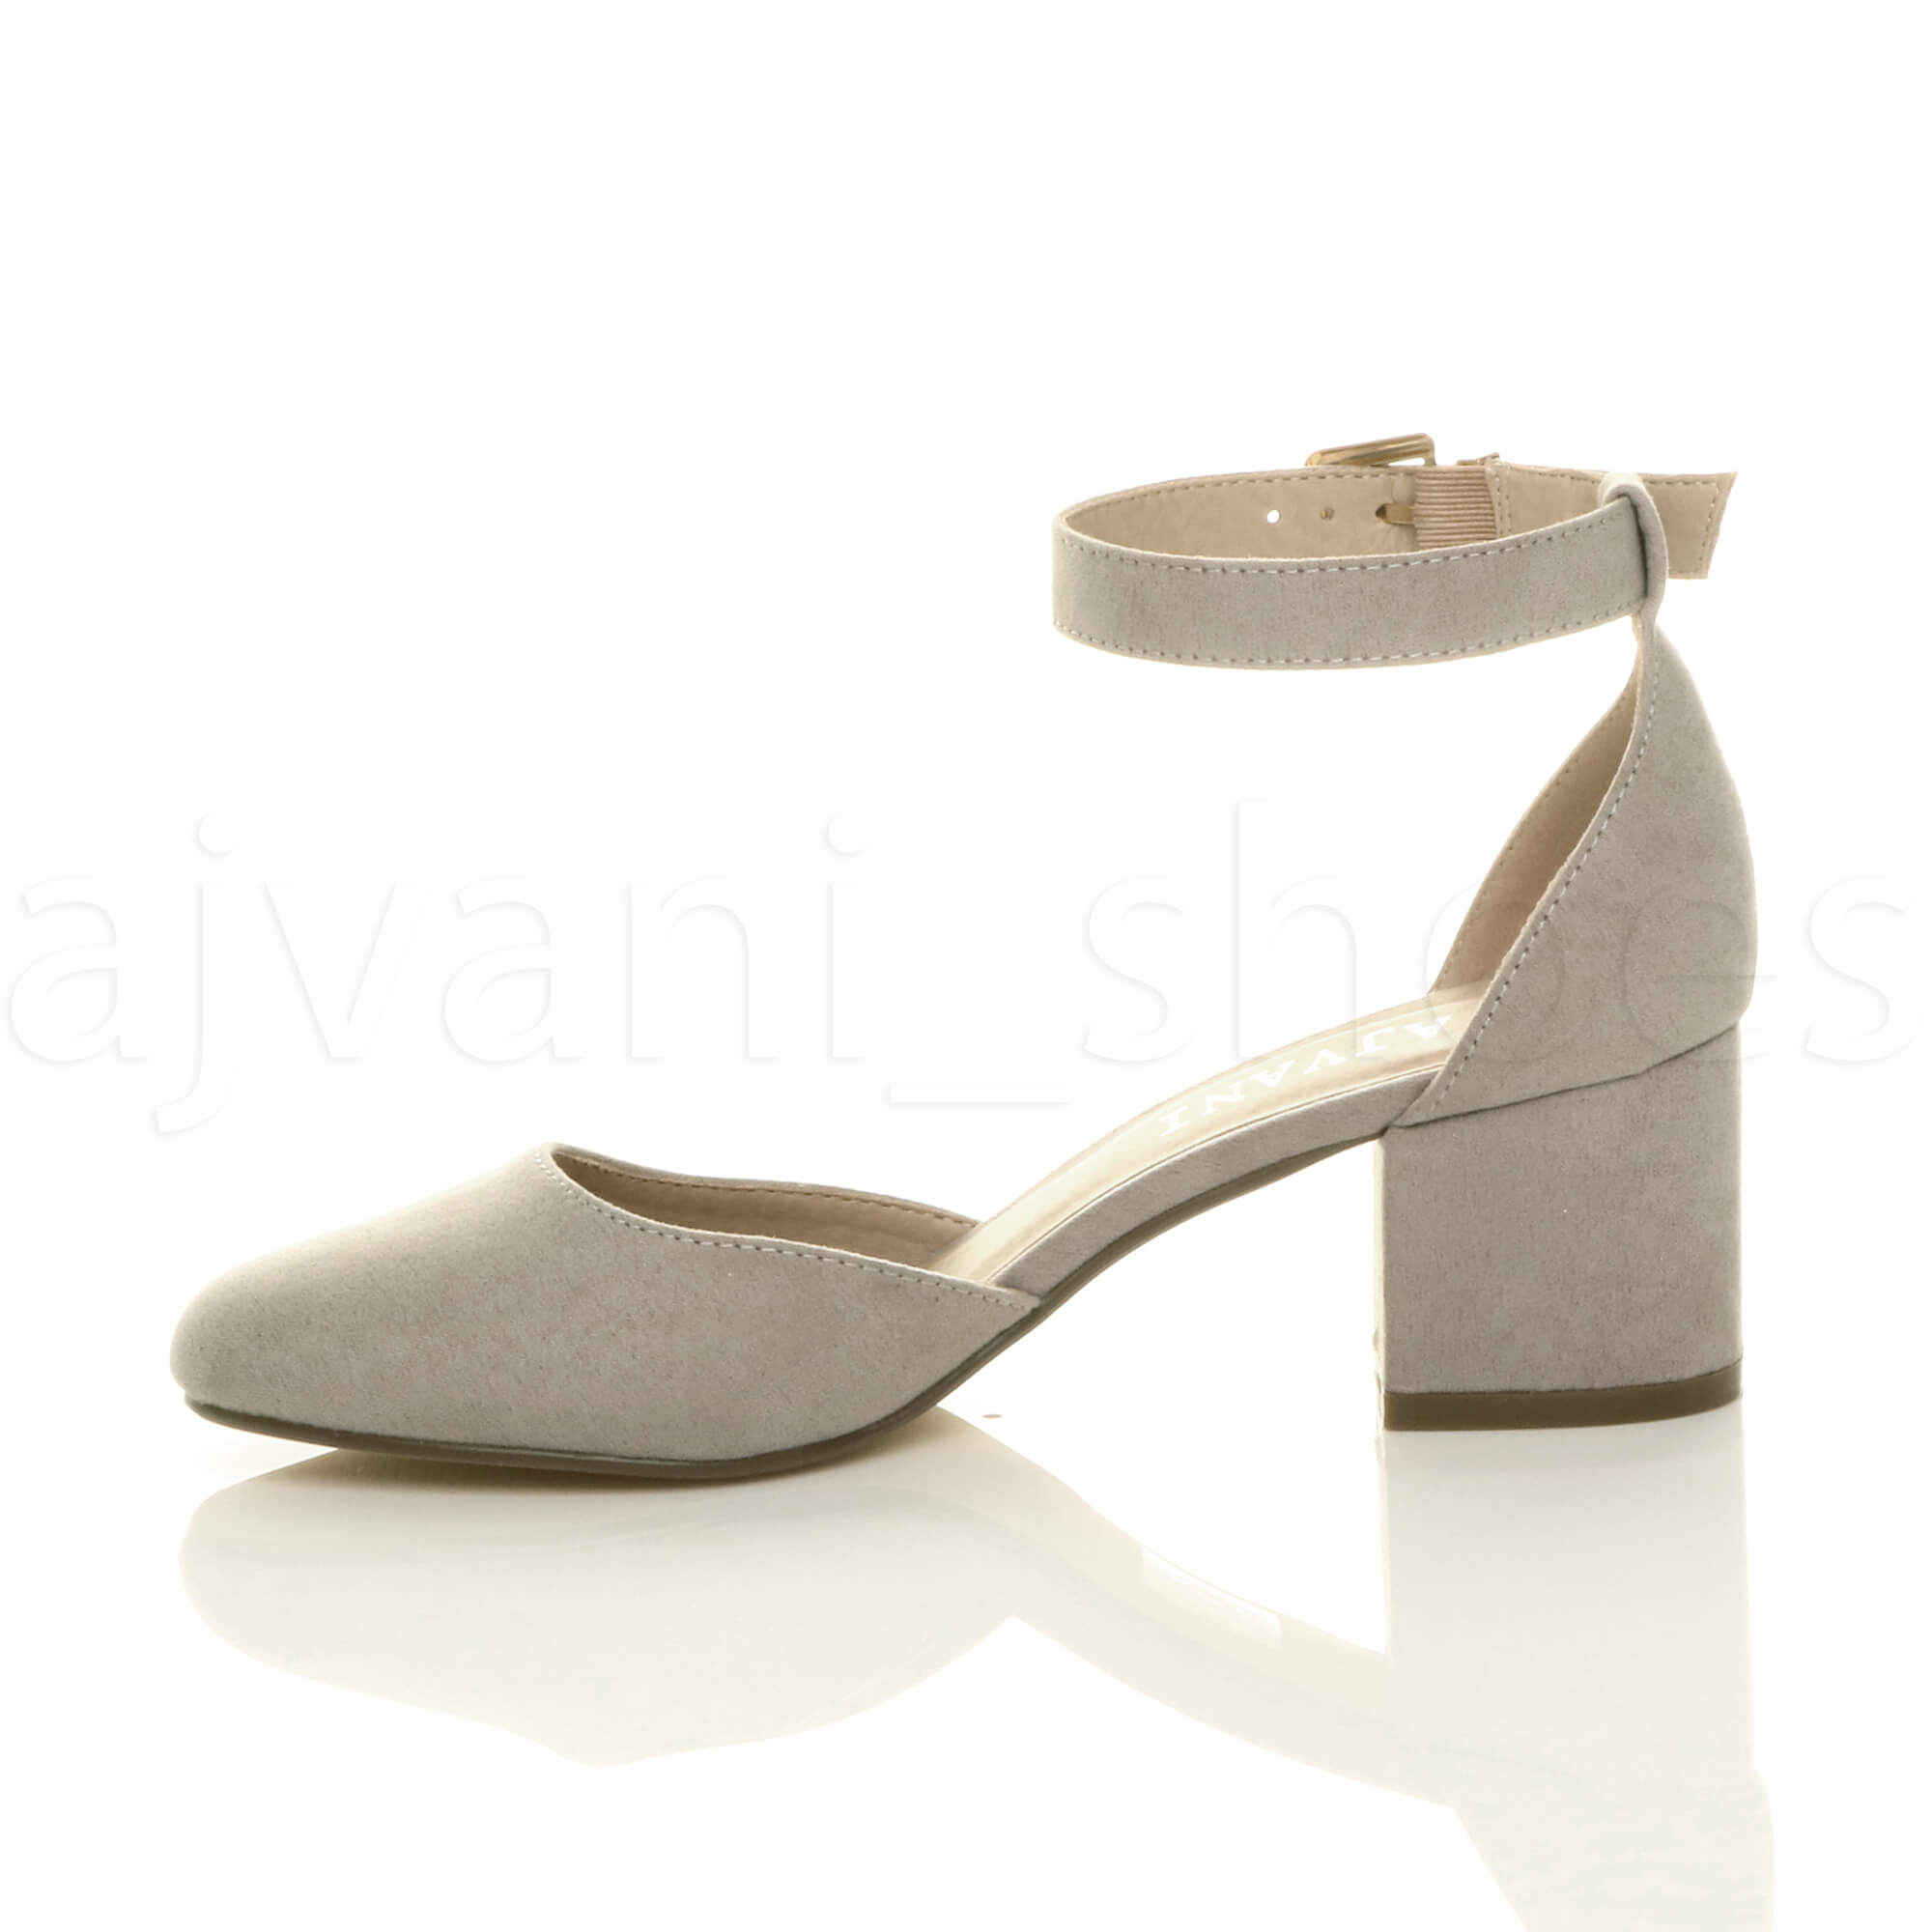 WOMENS-LADIES-LOW-MID-BLOCK-HEEL-ANKLE-STRAP-MARY-JANE-COURT-SHOES-SANDALS-SIZE thumbnail 68